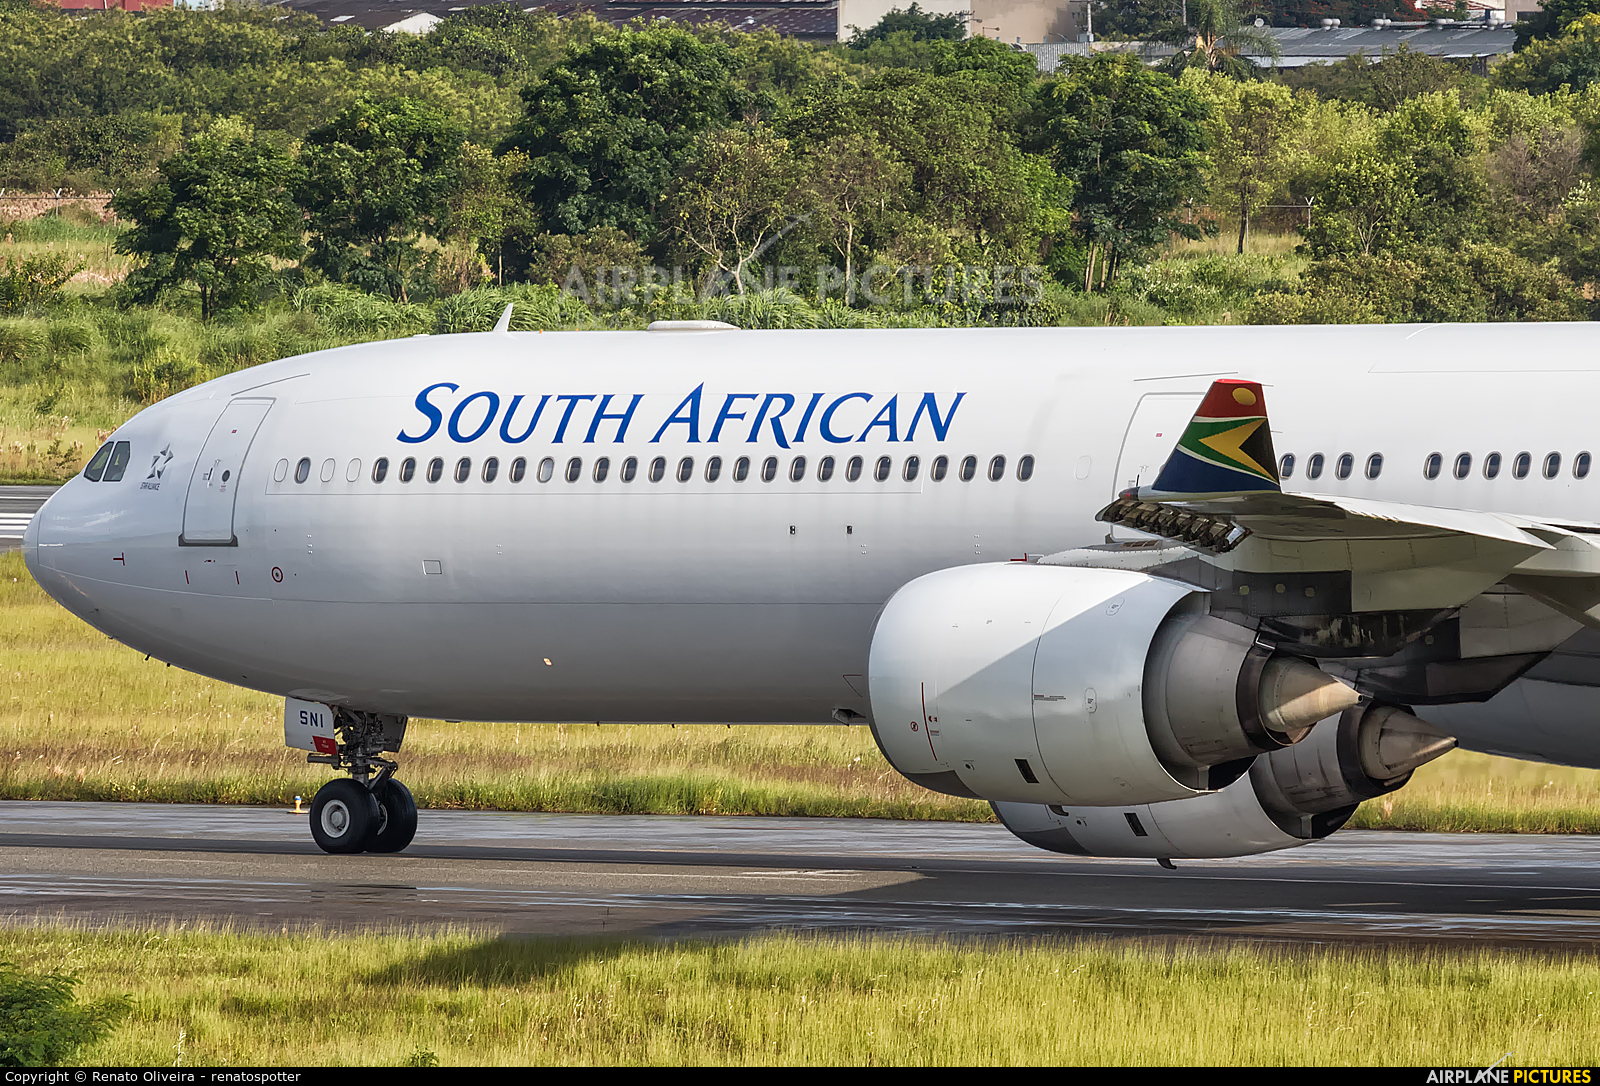 South African Airways ZS-SNI aircraft at São Paulo - Guarulhos